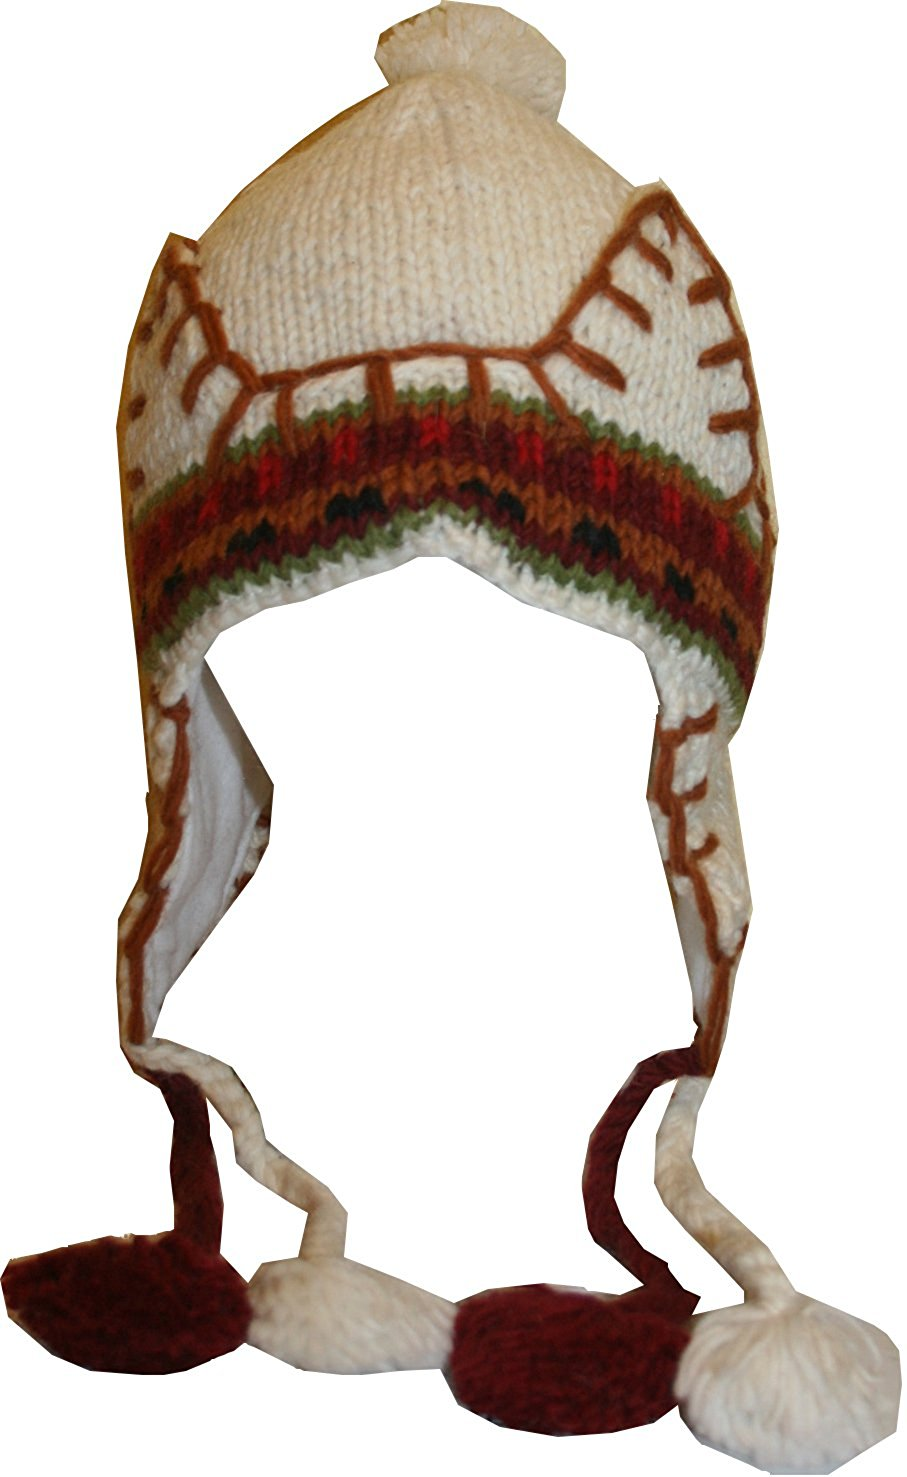 Highland Wool Knit Beanie Fleece Earflap Beanies - Agan Traders, Cream Rust